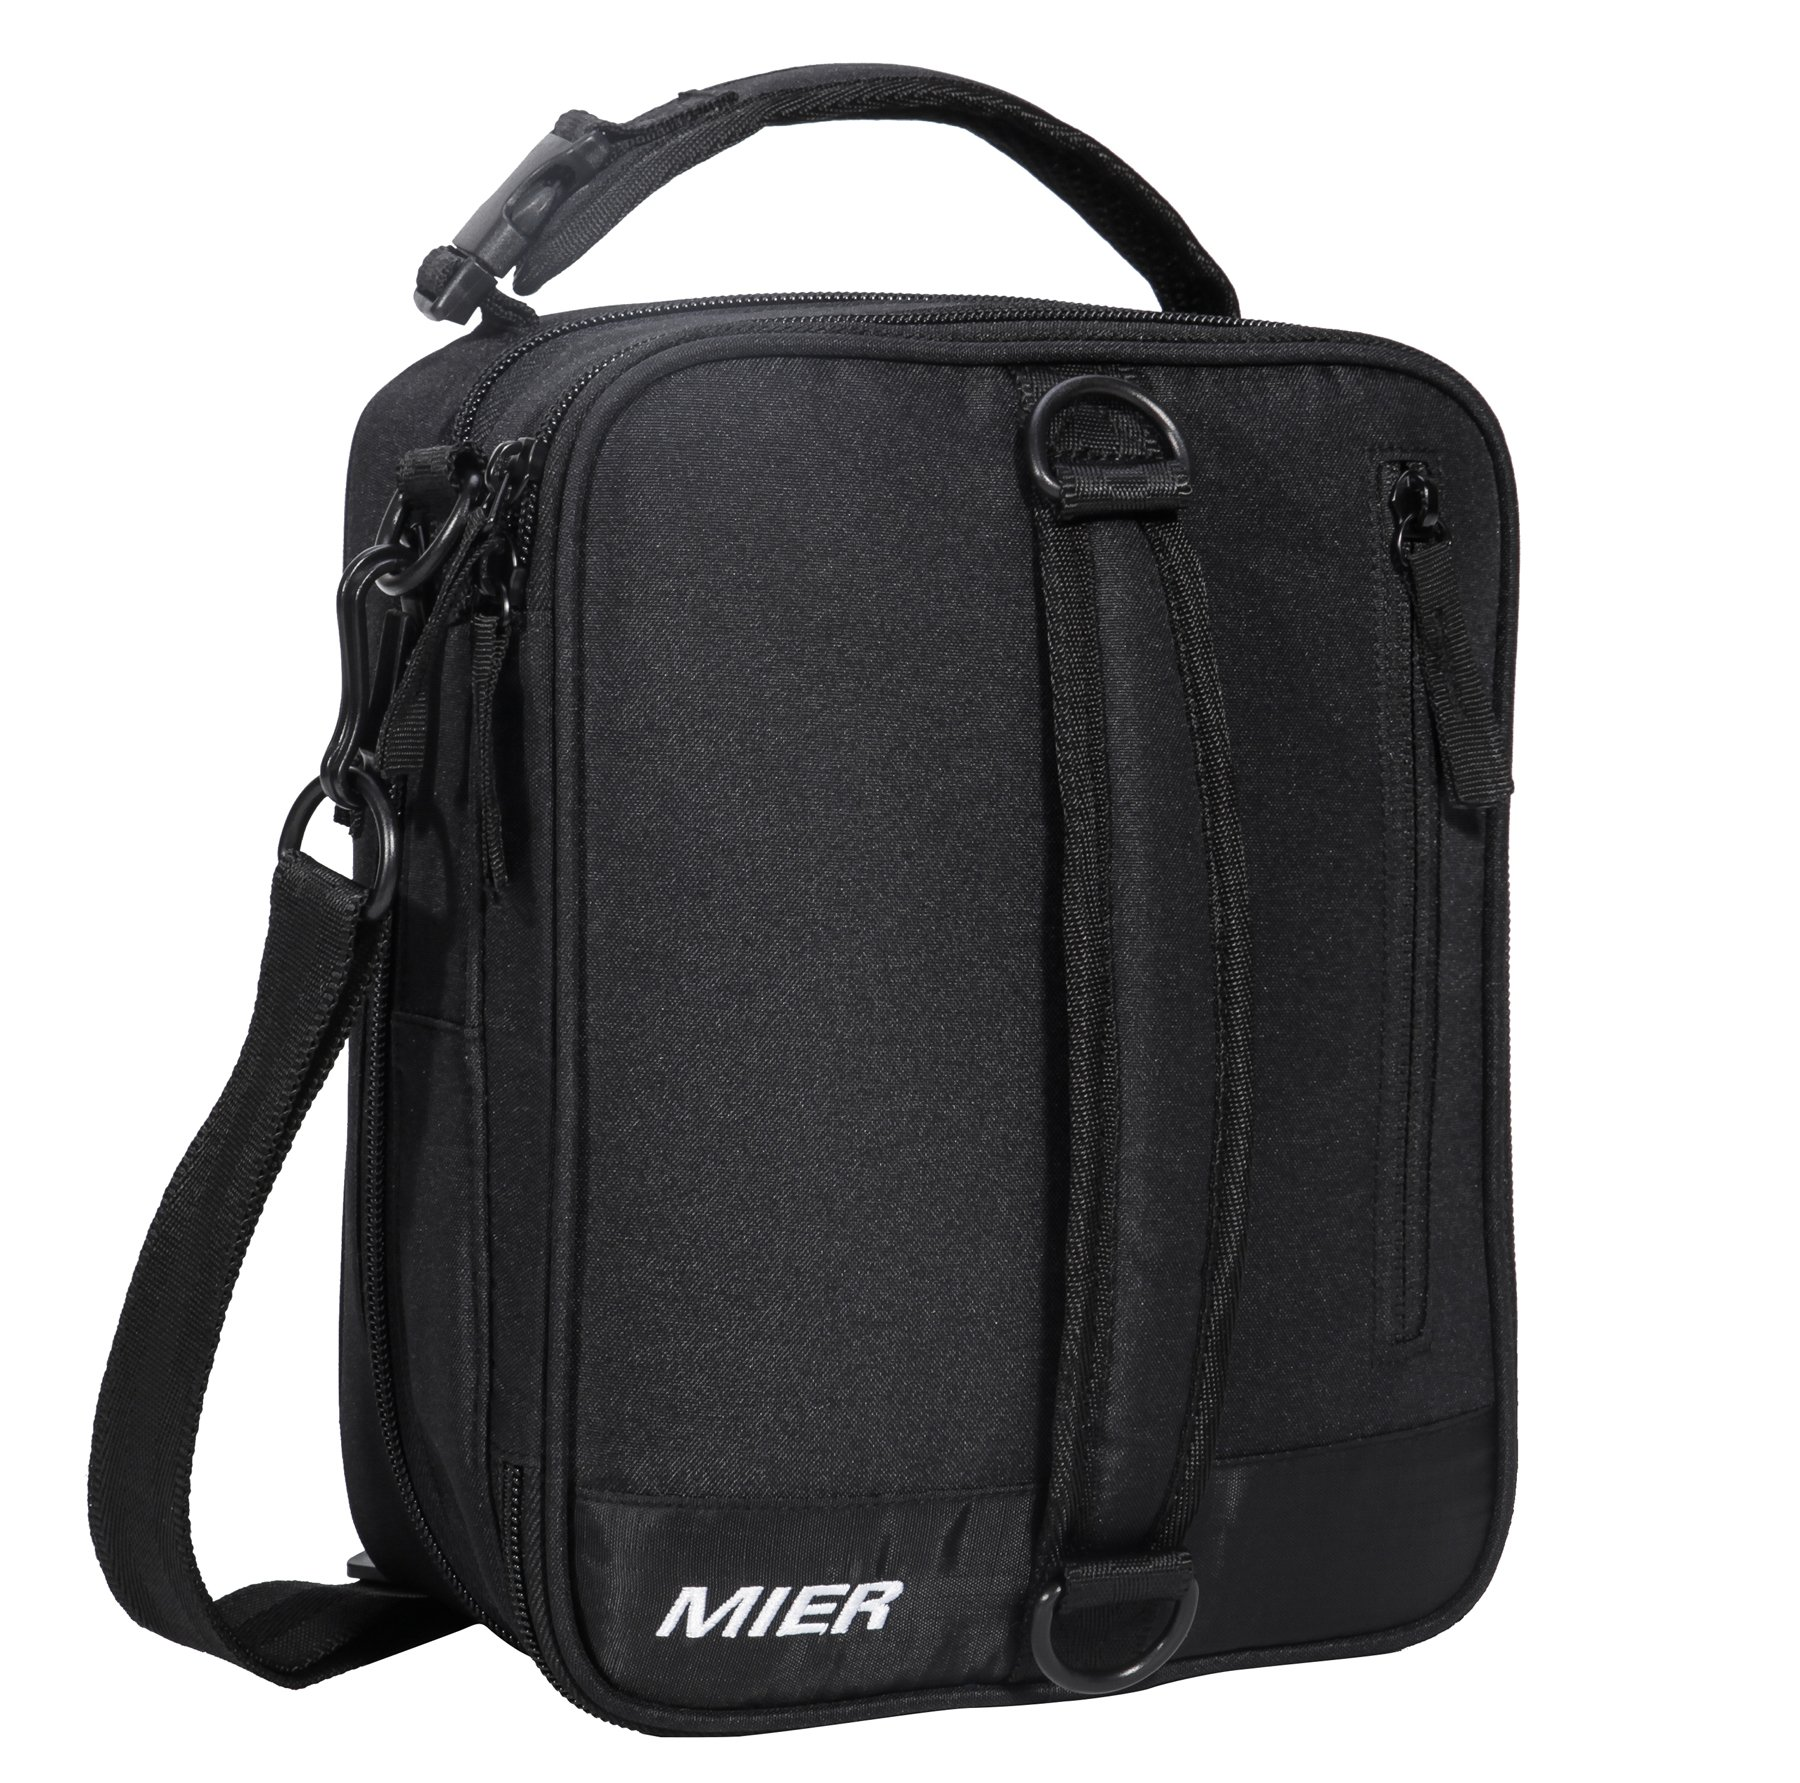 MIER Insulated Lunch Box Bag Expandable Lunch Pack for Men, Women, Black by MIER